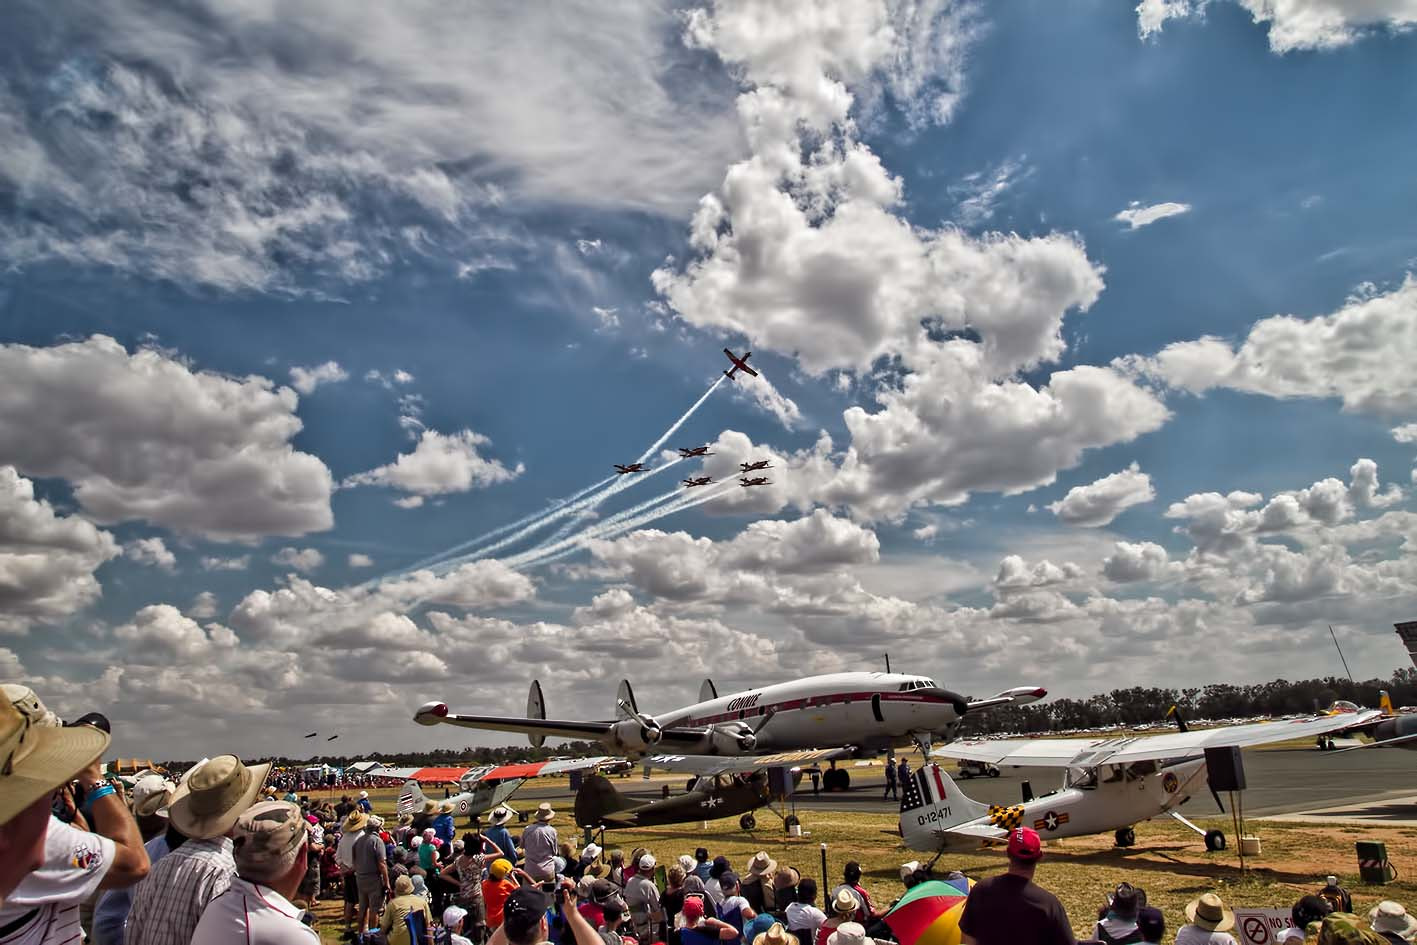 Photograph RAAF Roulettes at Warbirds Downunder Nov 2011 by Ecevik on 500px